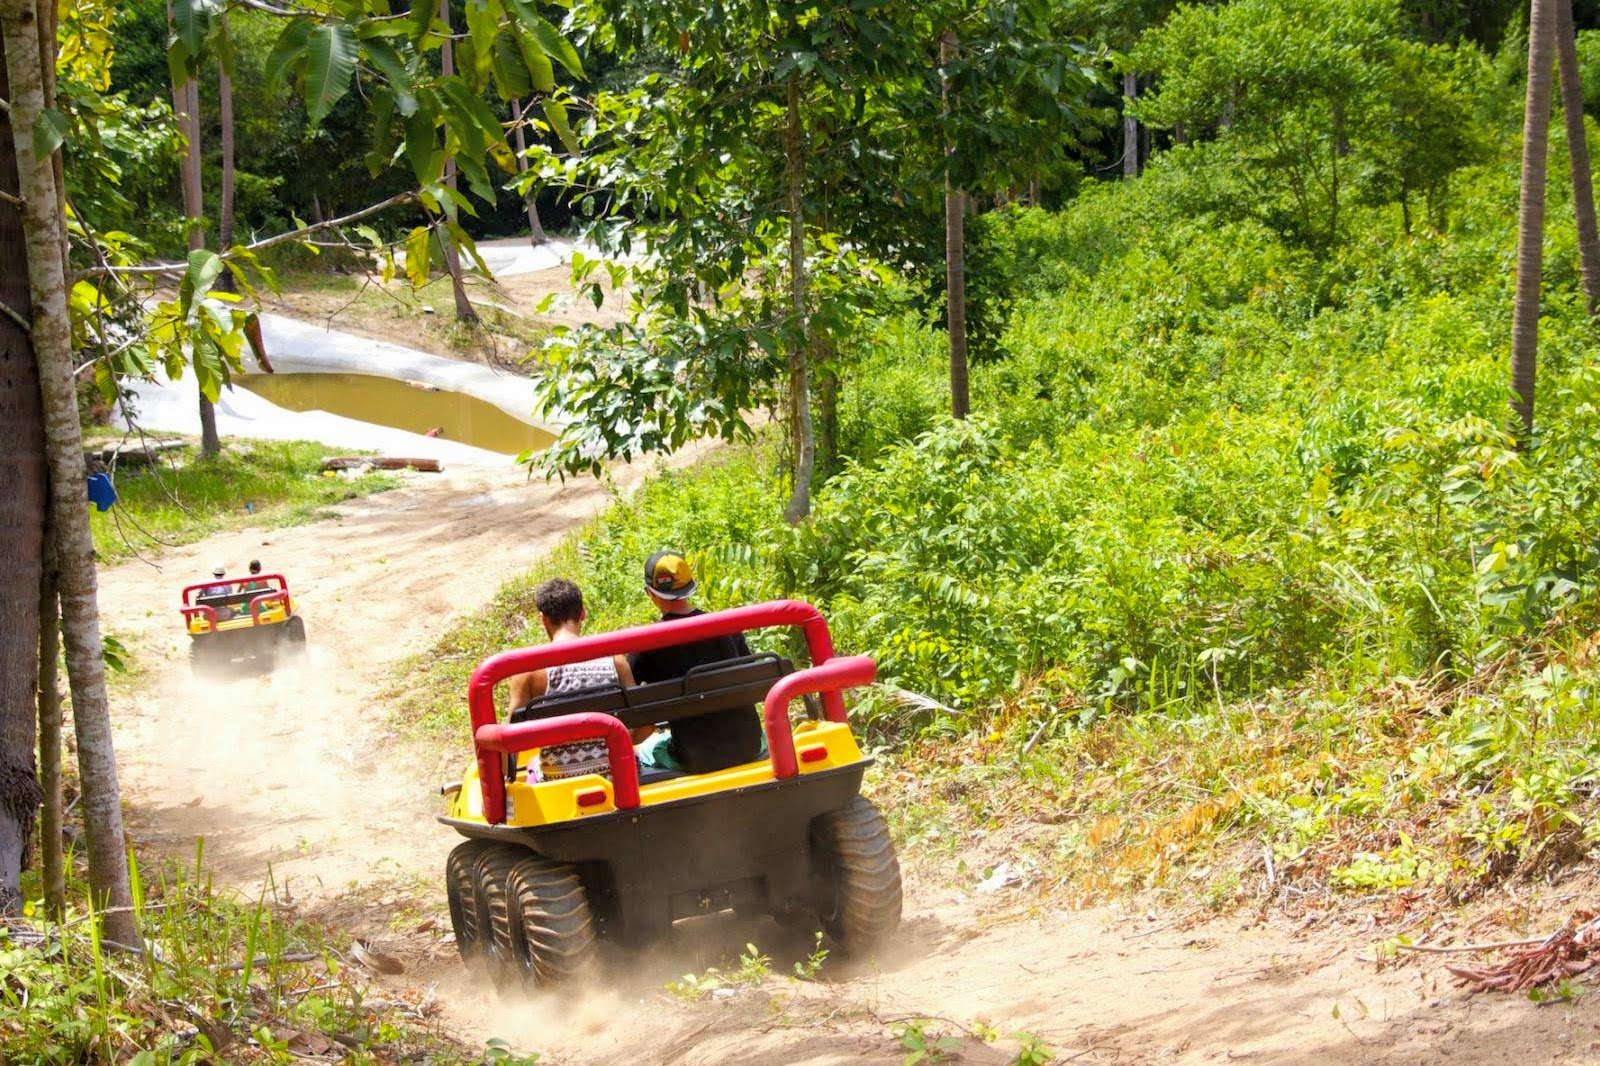 Half-Day Trip to Saiyor Garden with amphibious ATV Ride